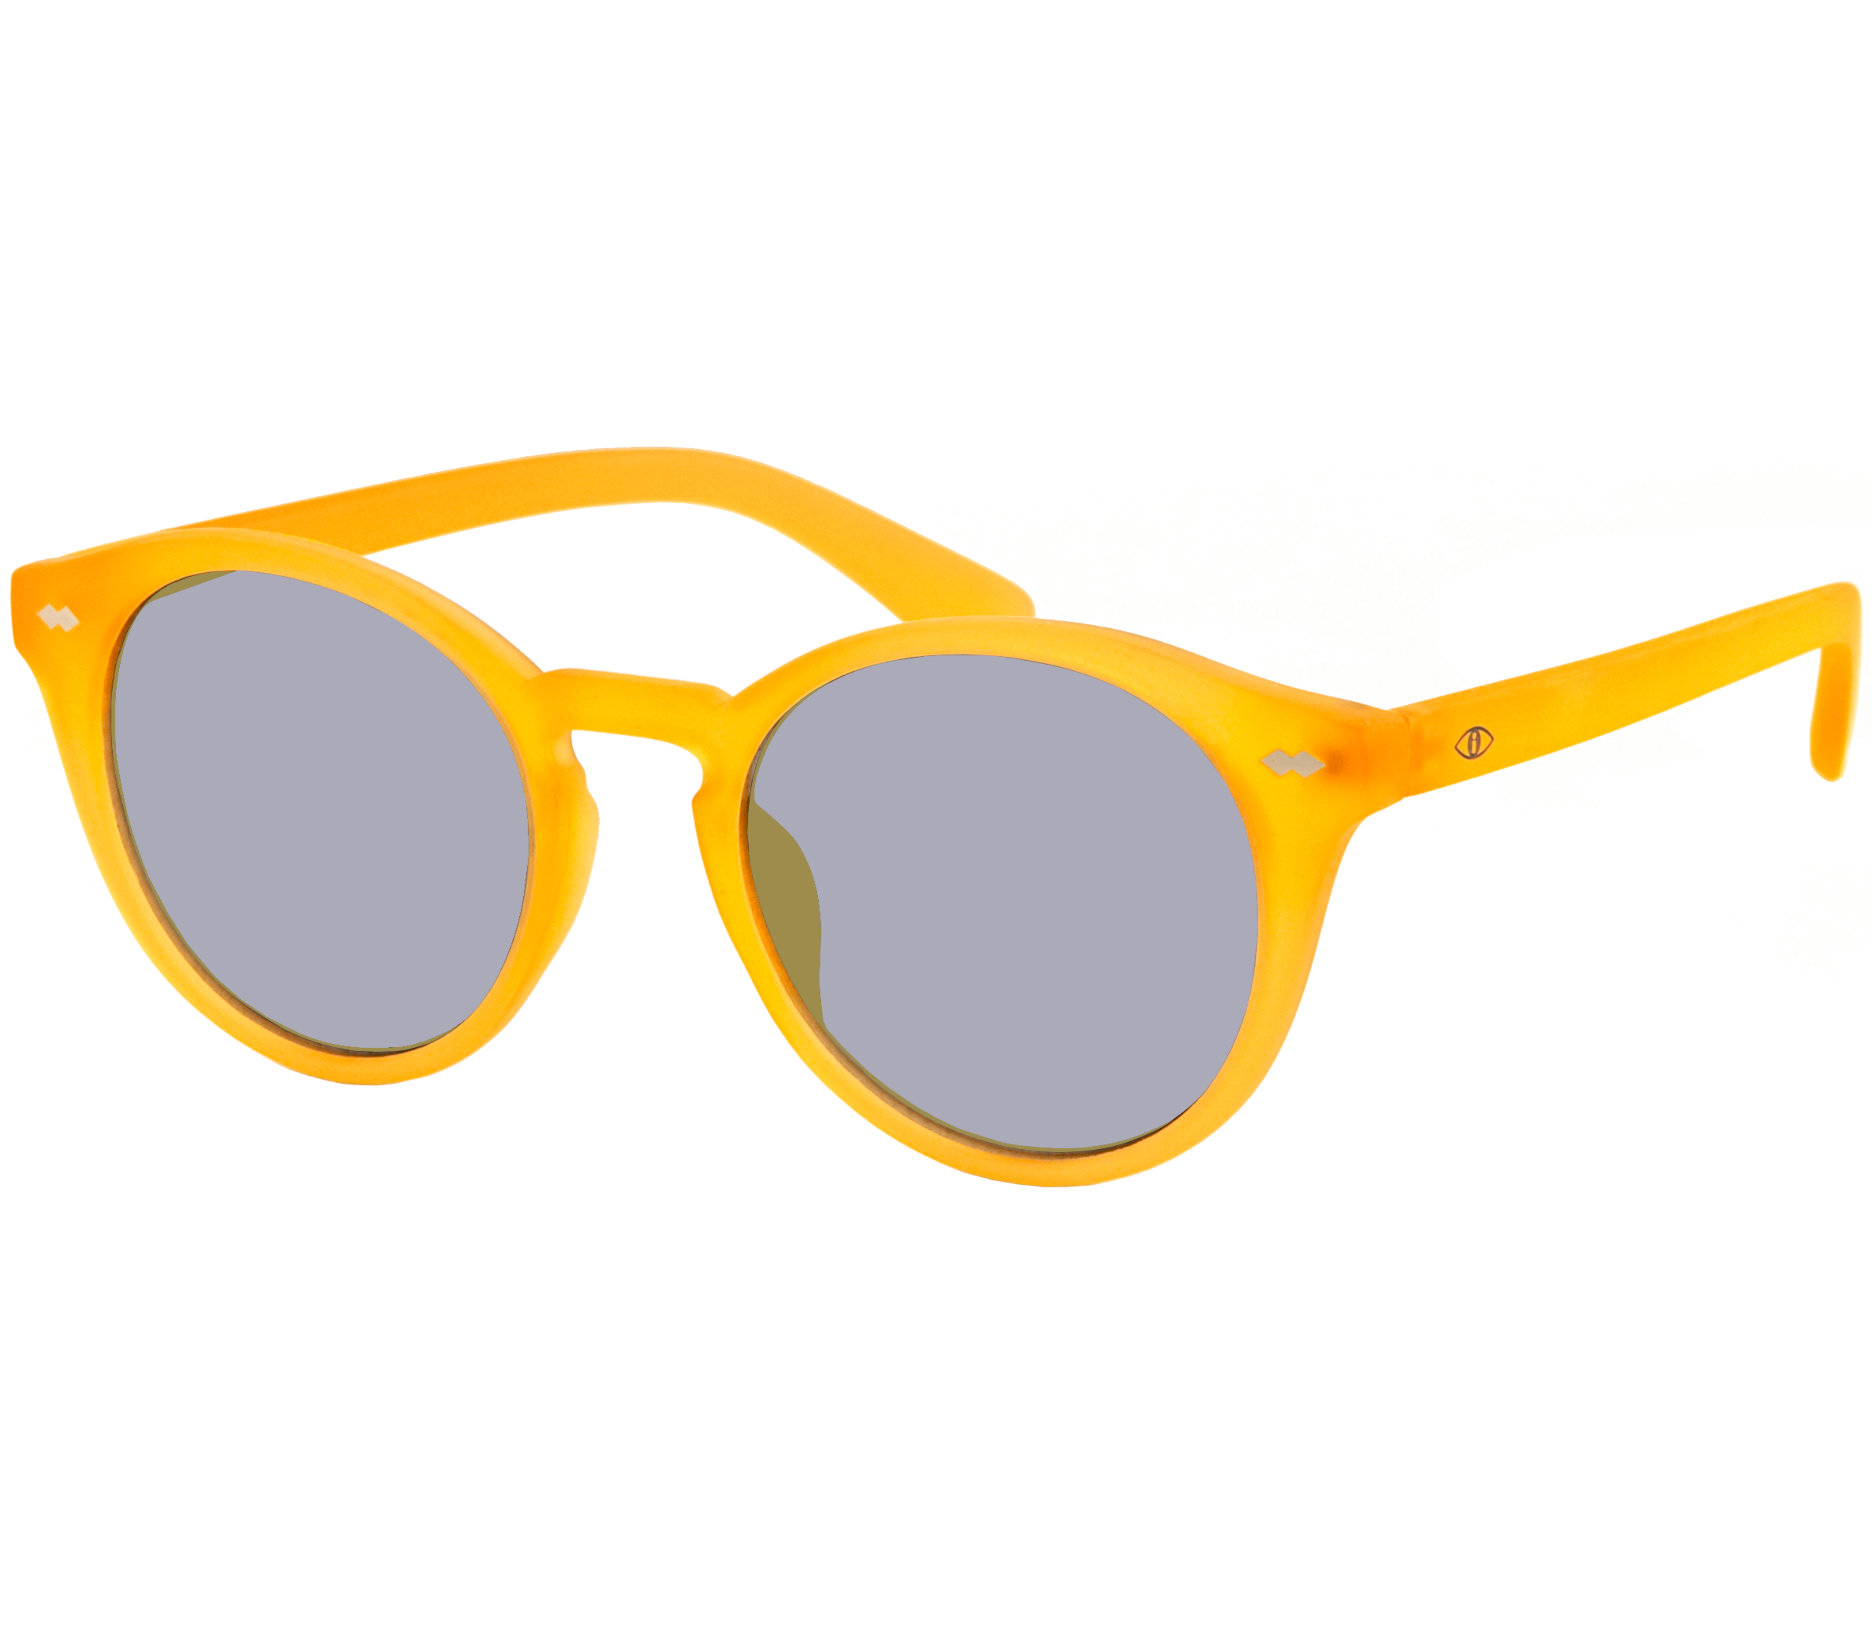 Main Image (Angle) - California (Yellow) Retro Sun Readers